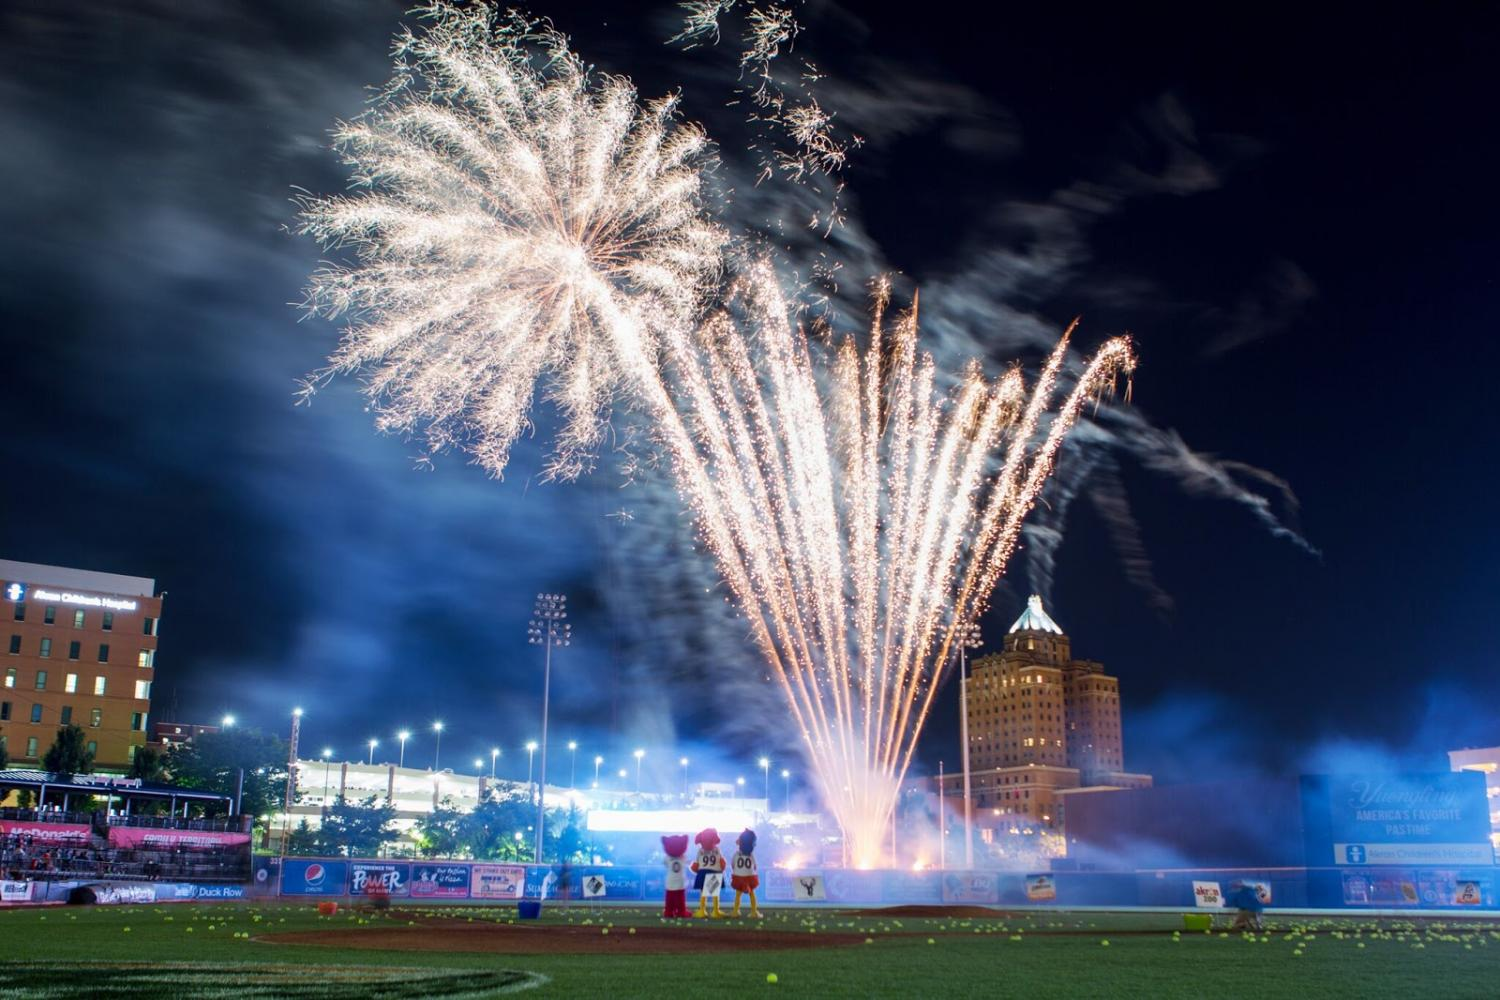 RubberDucks+fireworks+show+at+Canal+Park